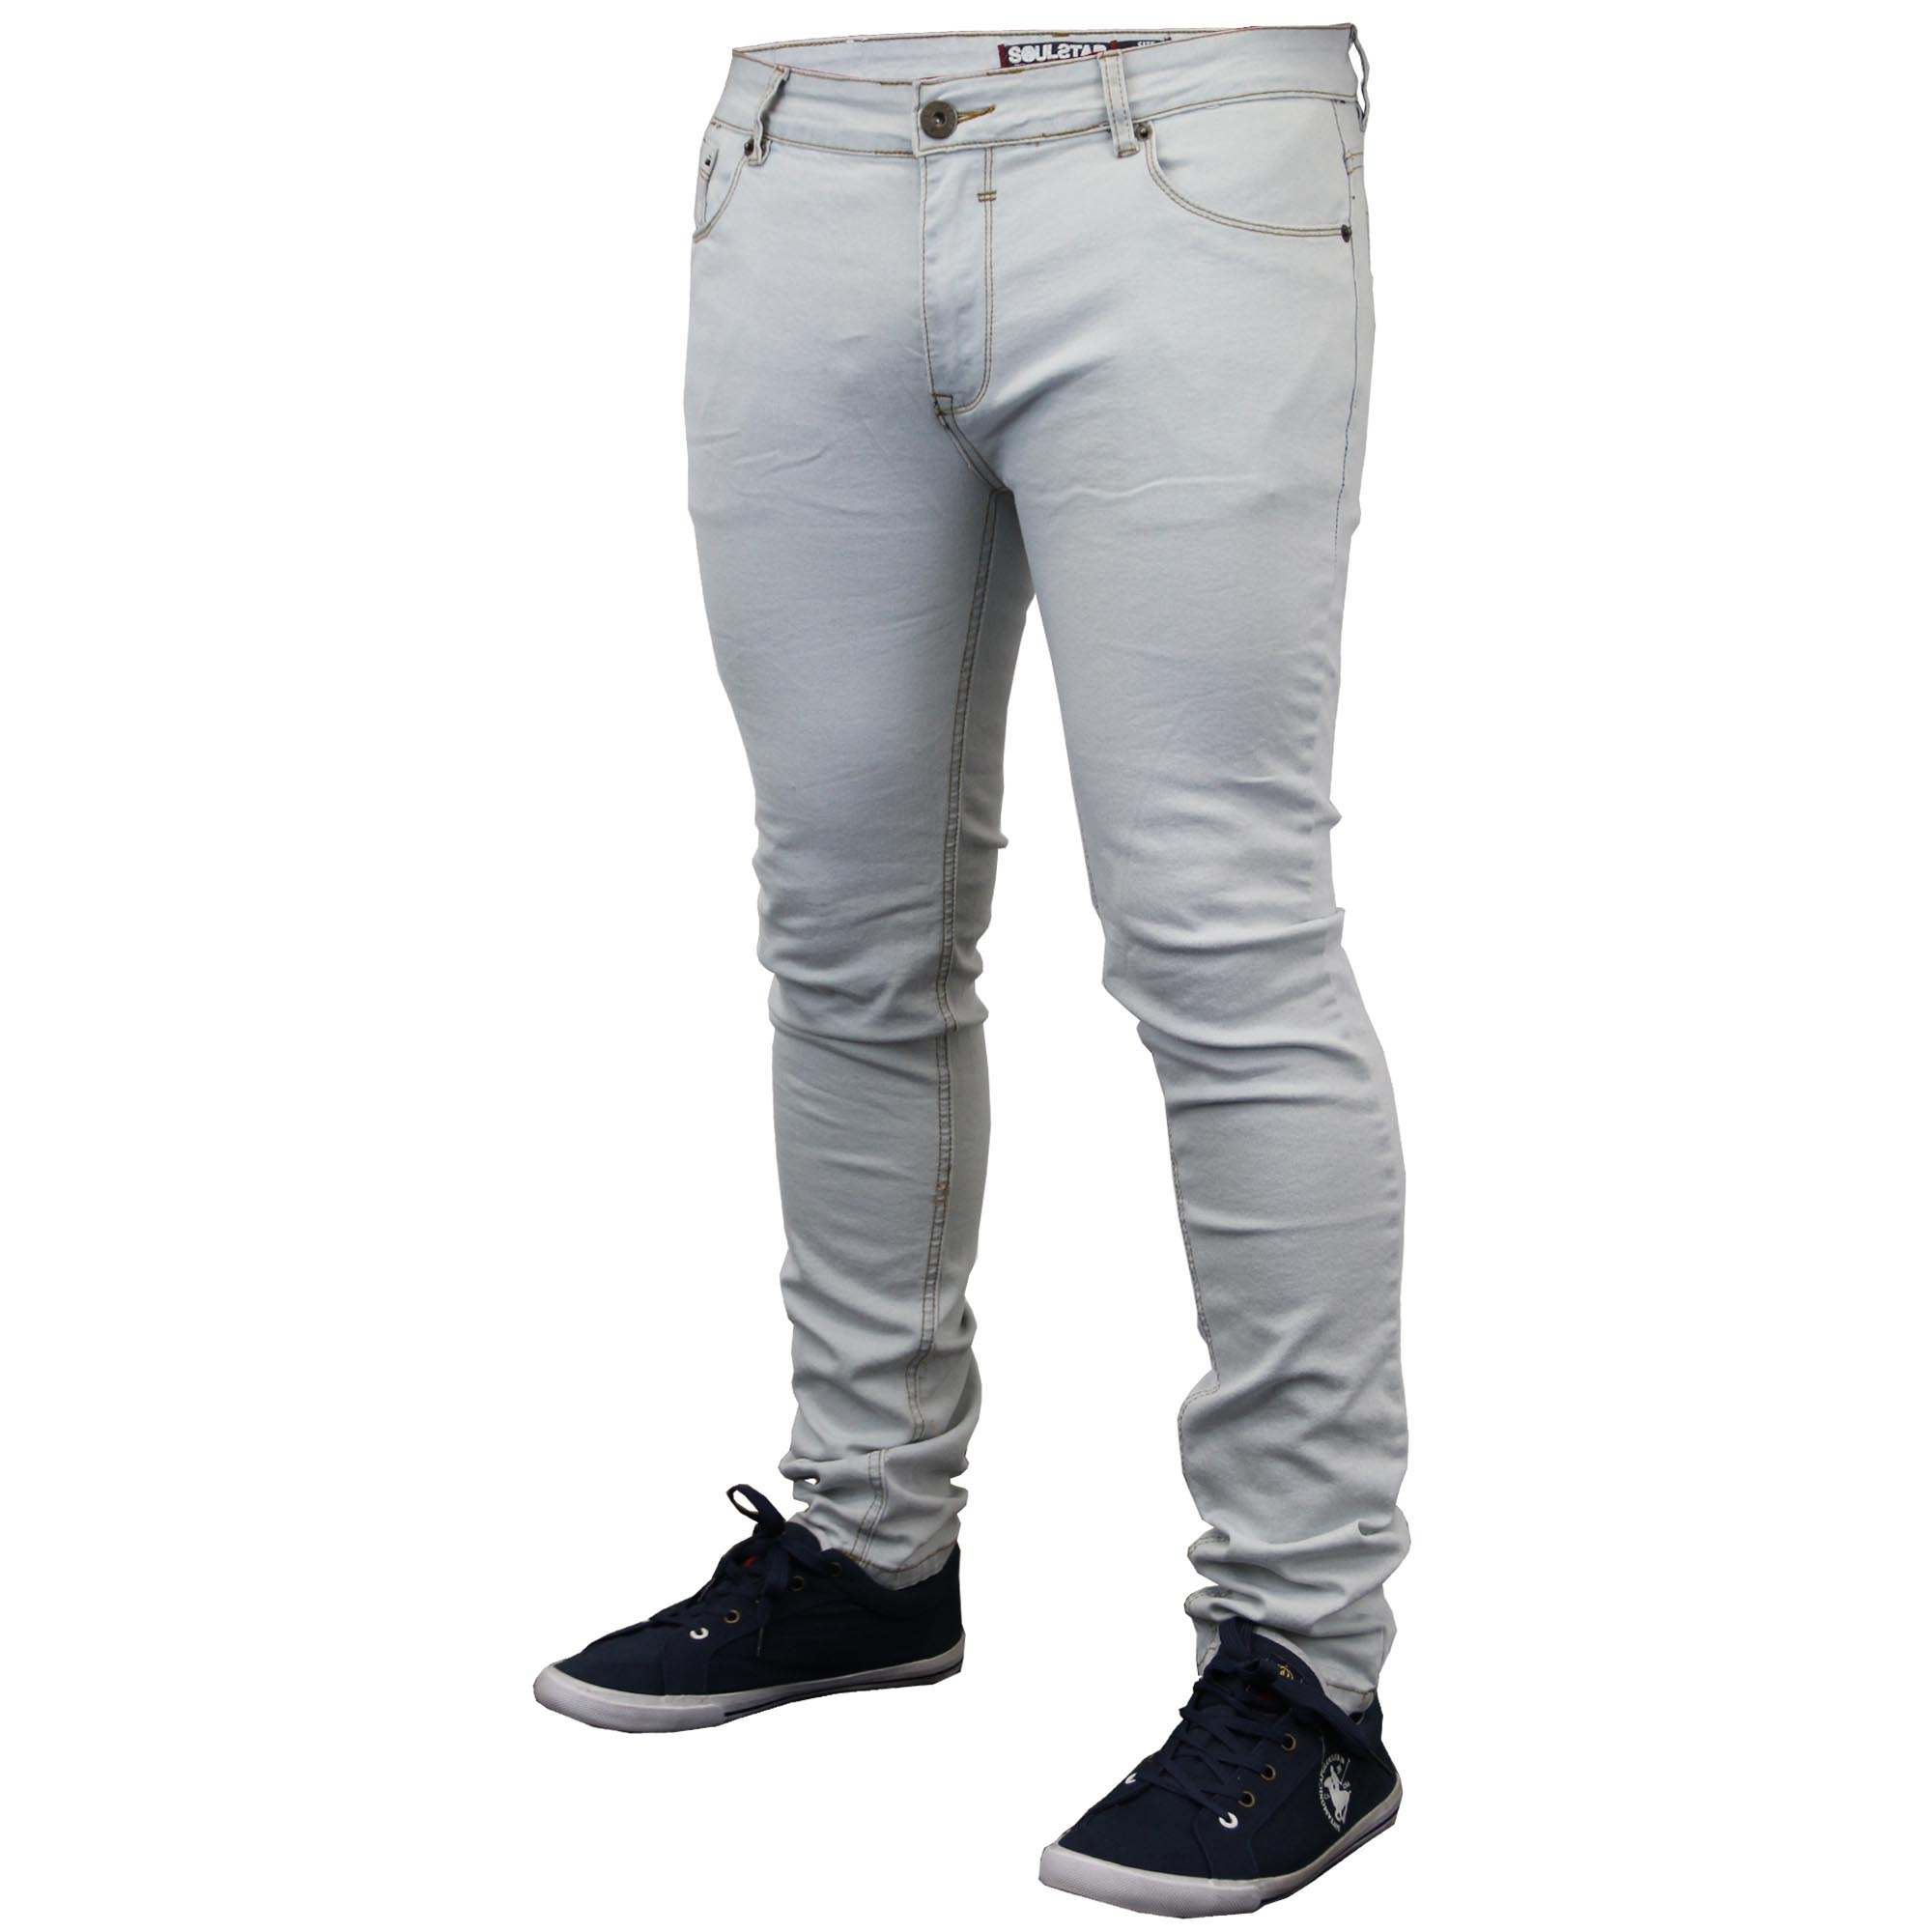 Mens Ripped Knee Jeans Images Wallpaper Home Decor